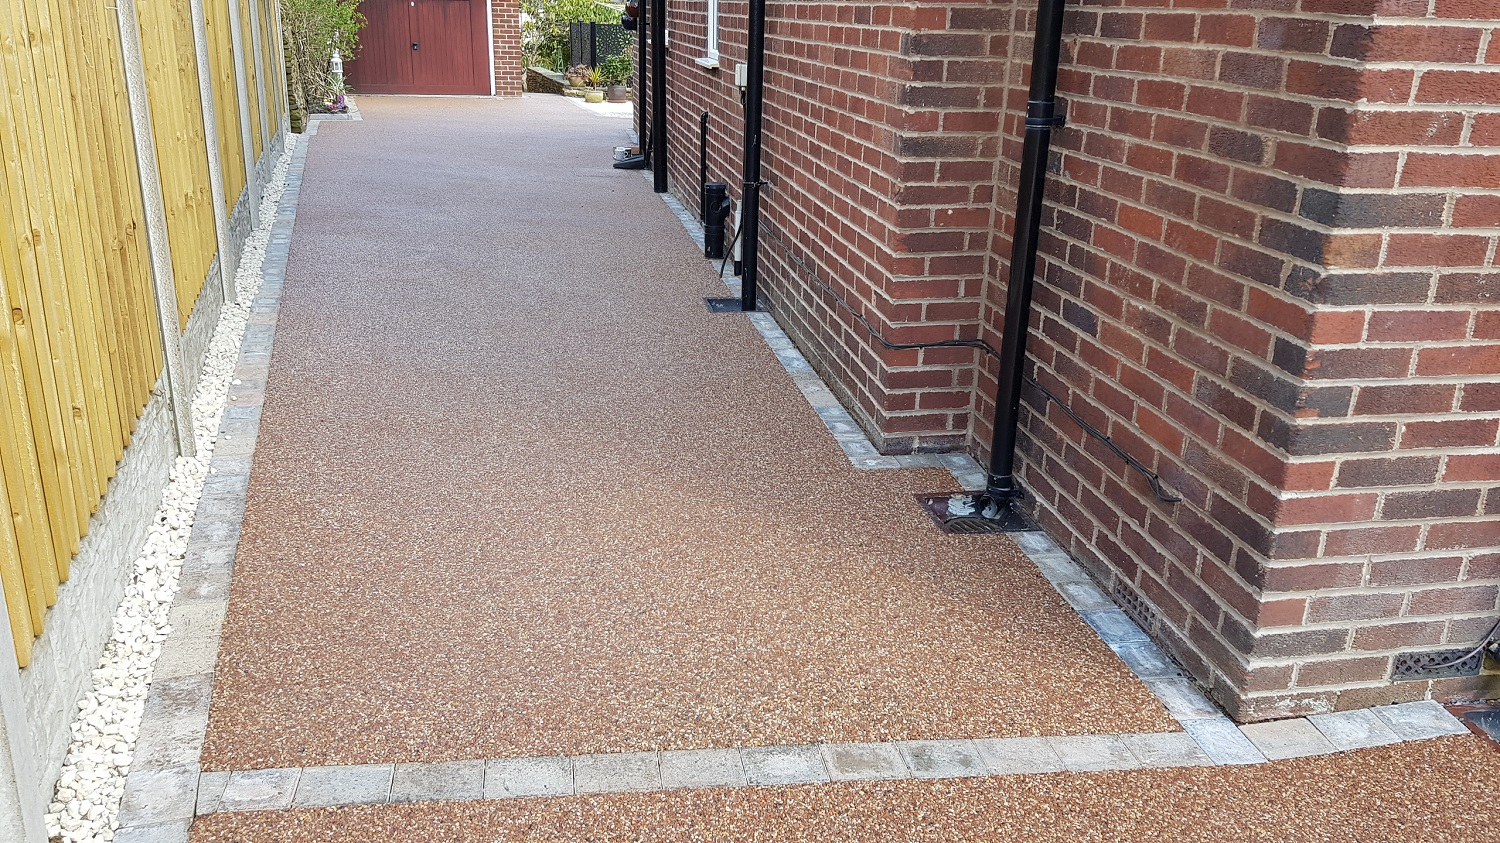 R15 - Chilli Chocolate Mix (2)  Resin Bound Driveway Surfacing at Brookside  in Chesterfield with Bl